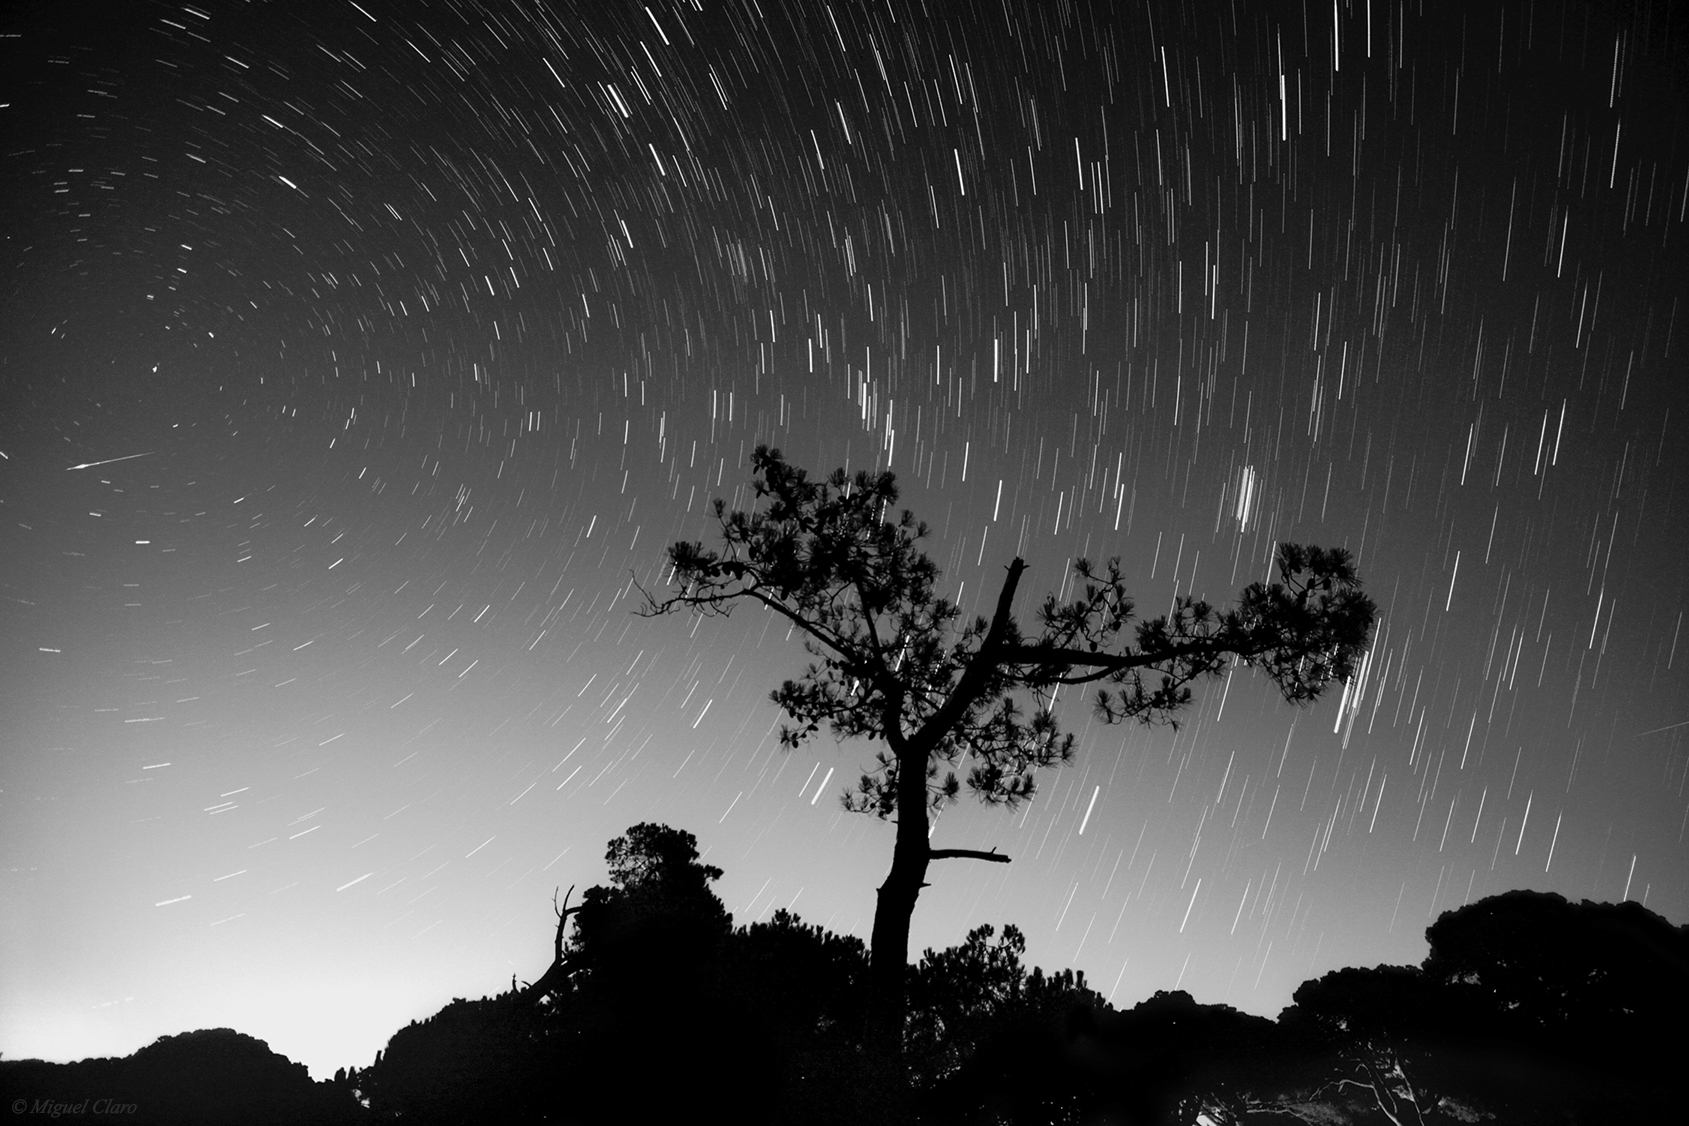 perseids meteor shower in black and white astrophotography by